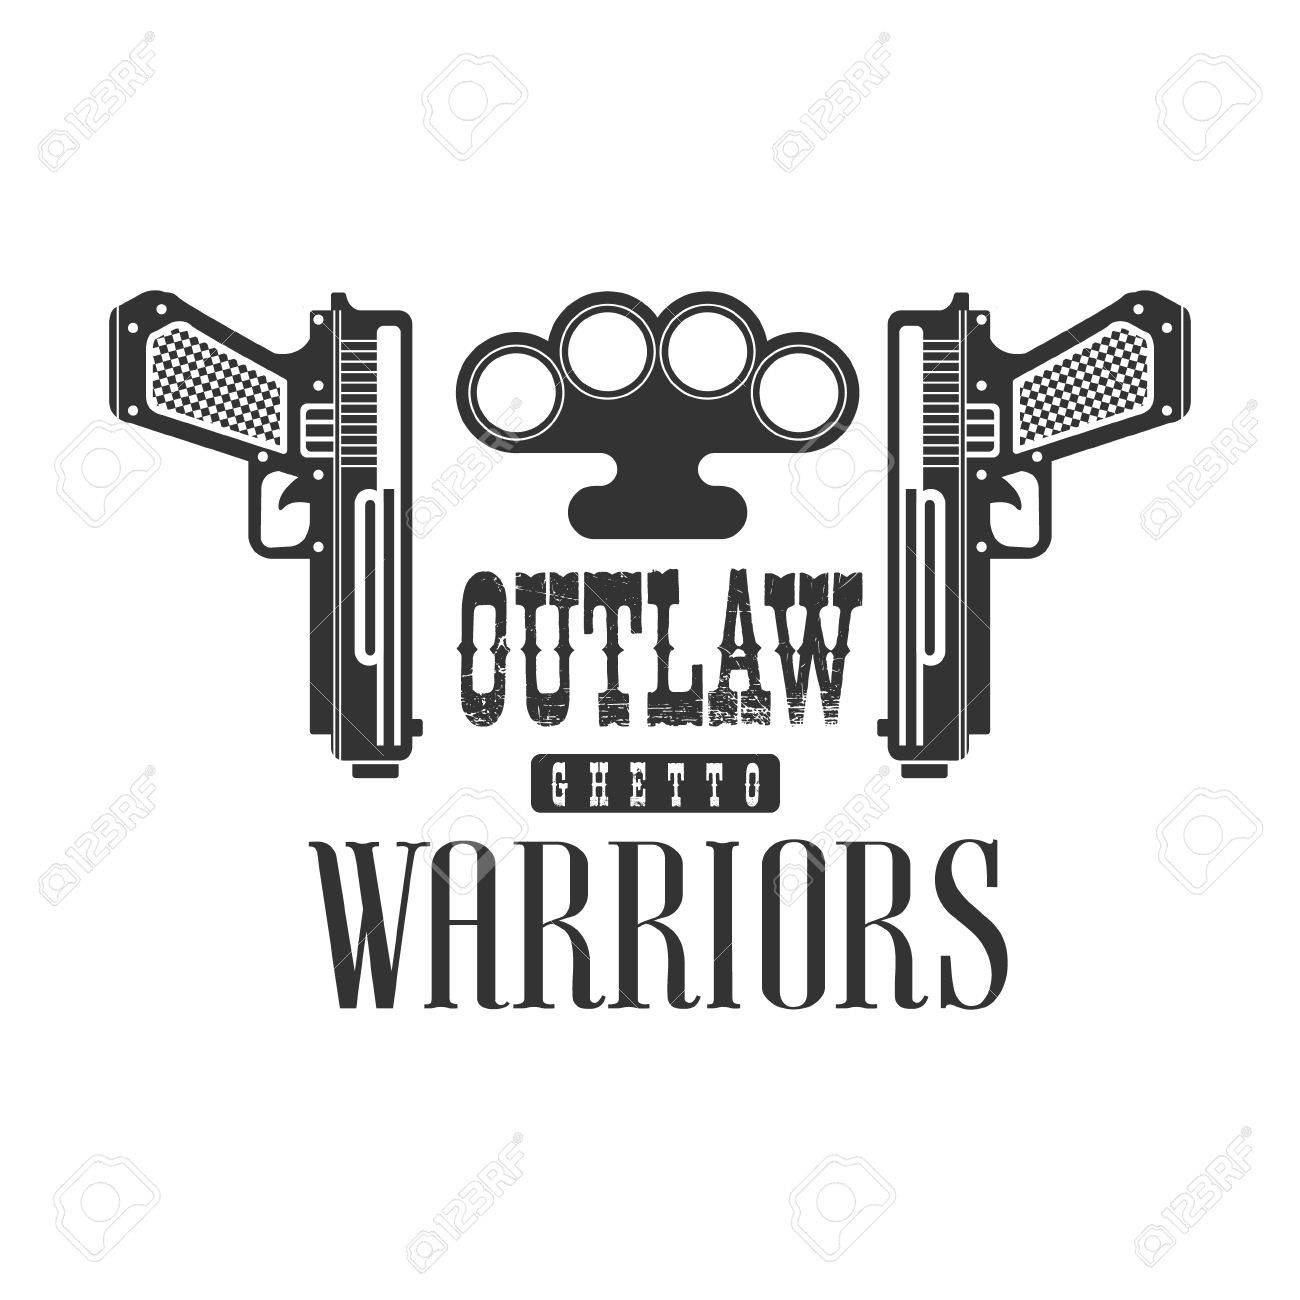 Criminal outlaw street club black and white sign design template criminal outlaw street club black and white sign design template with text guns and brass biocorpaavc